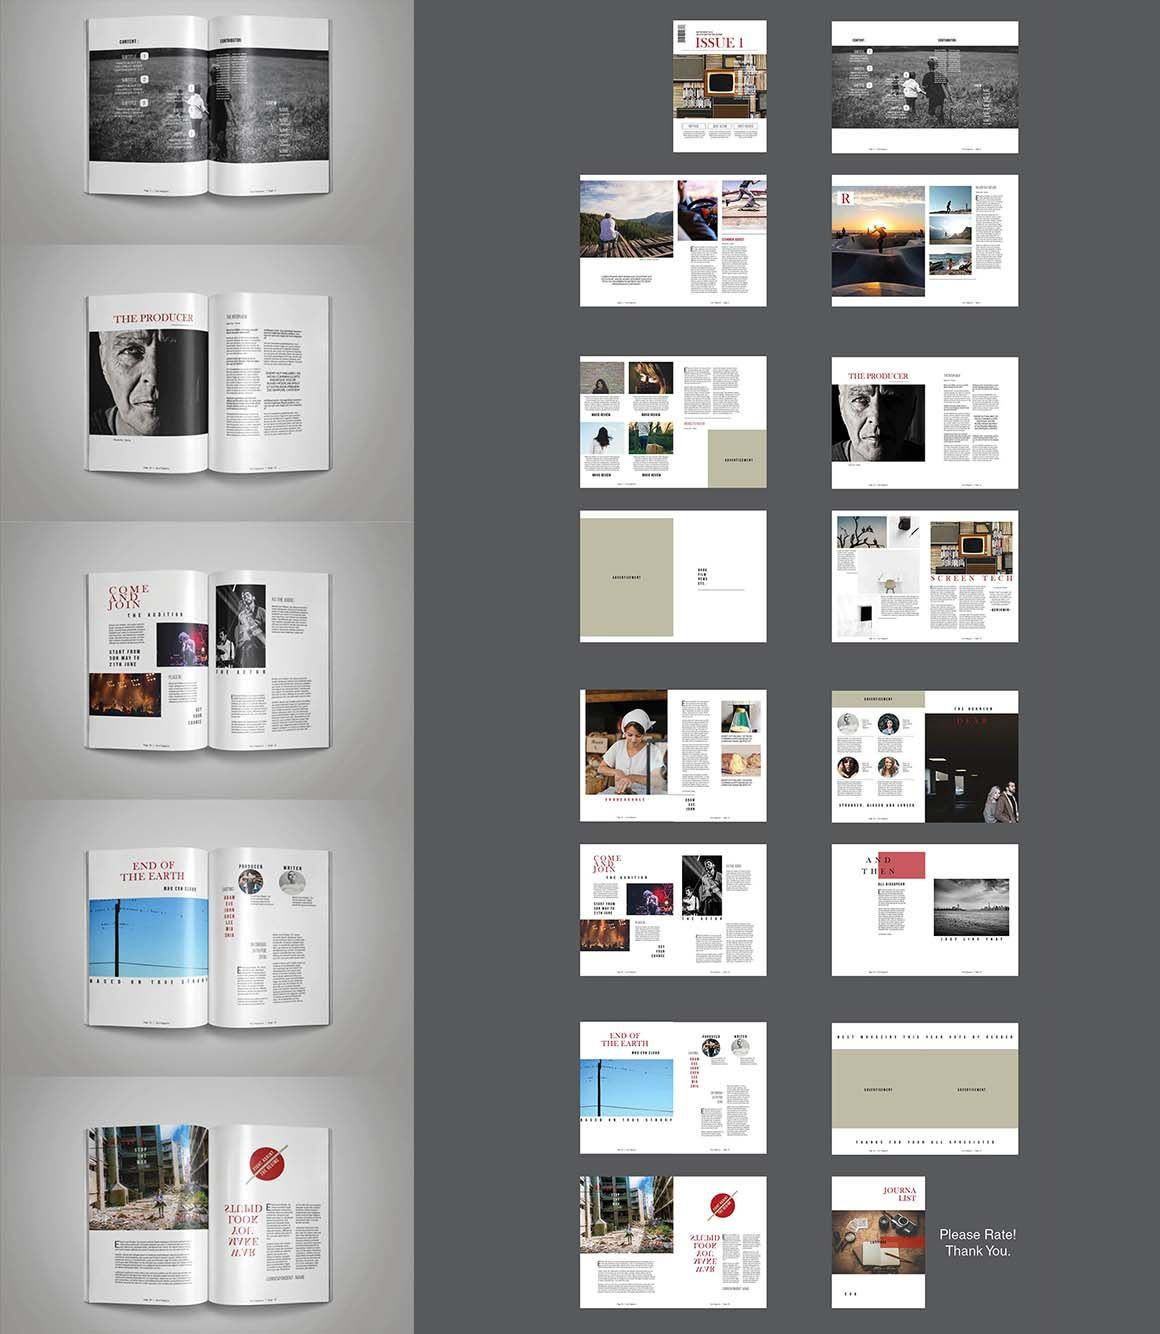 009 Stupendou Indesign Magazine Template Free High Resolution  Cover Download Indd Cs5Full